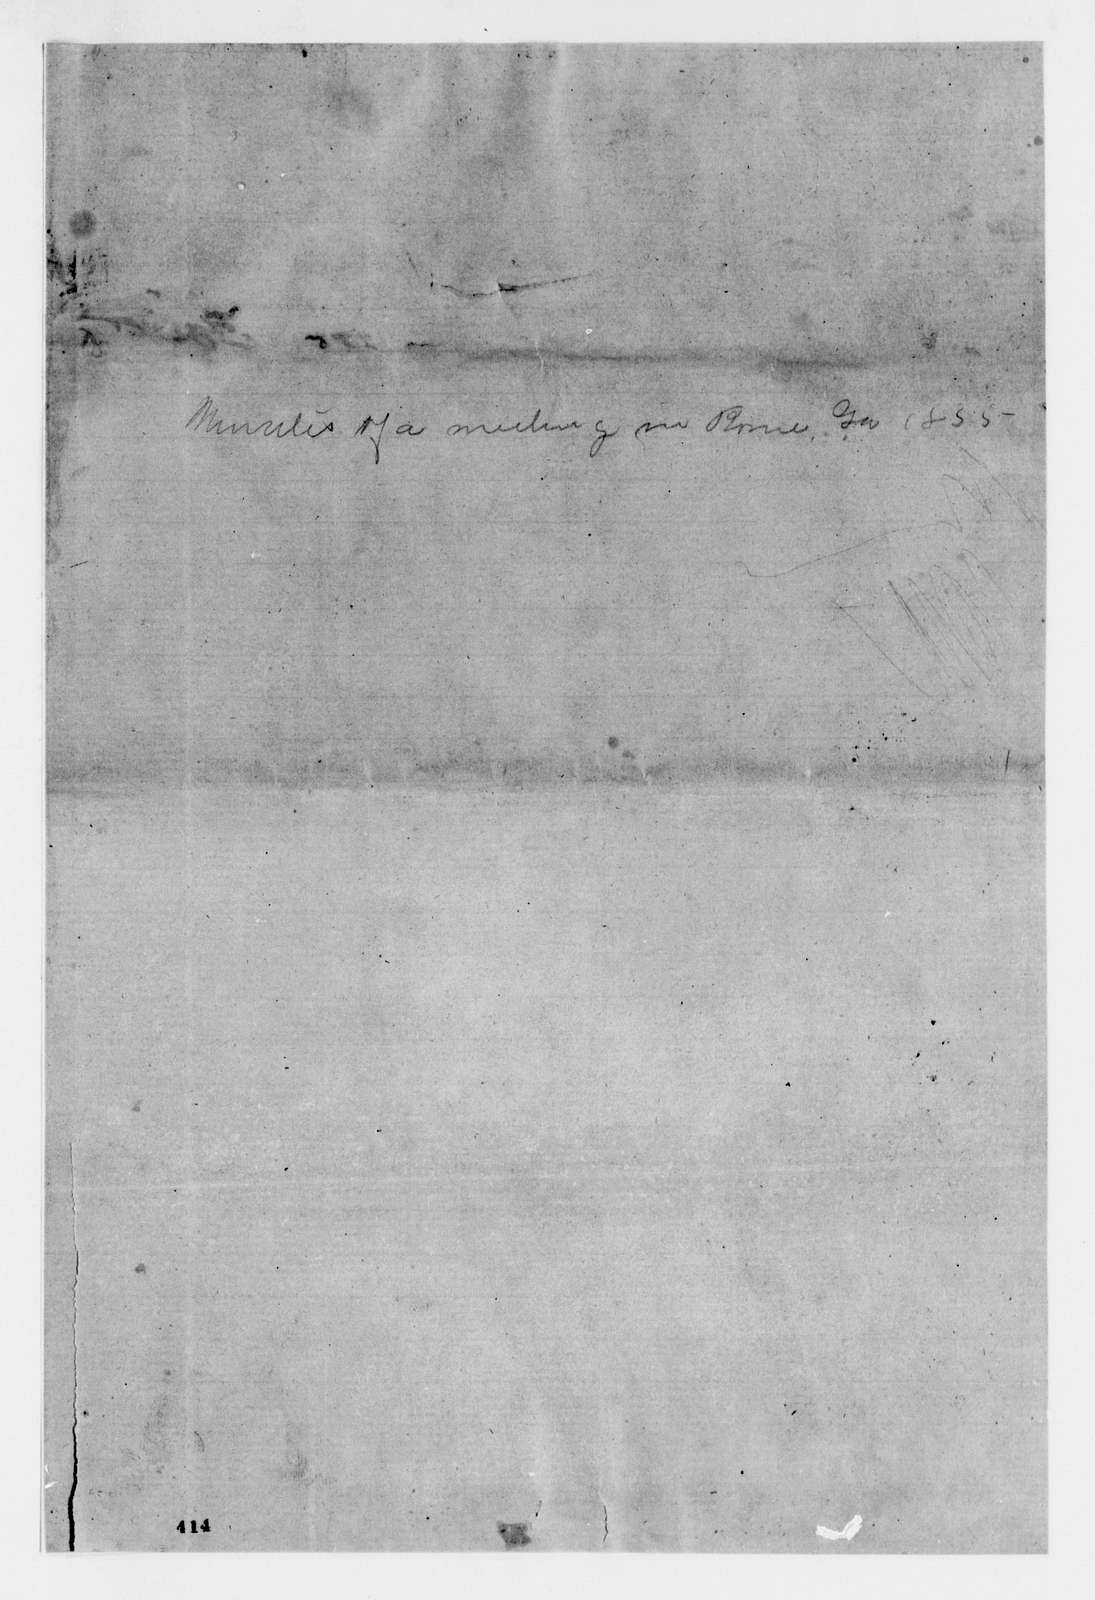 Alexander Hamilton Stephens Papers: General Correspondence, 1784-1886; 1852, Oct. 15-1855, Dec. 27